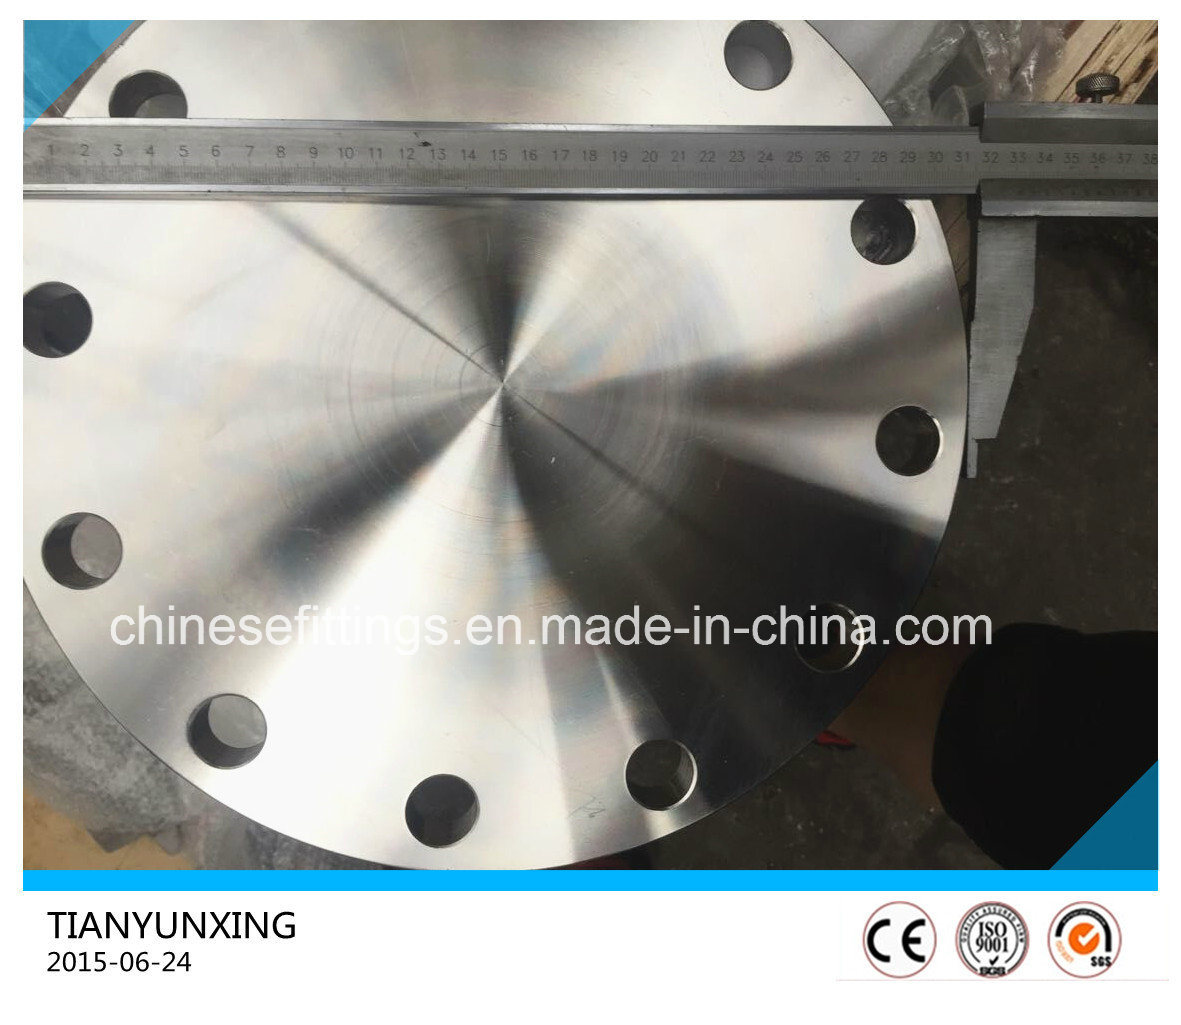 Forged JIS B2220 S31803 Deplex Stainless Steel Blind Flange